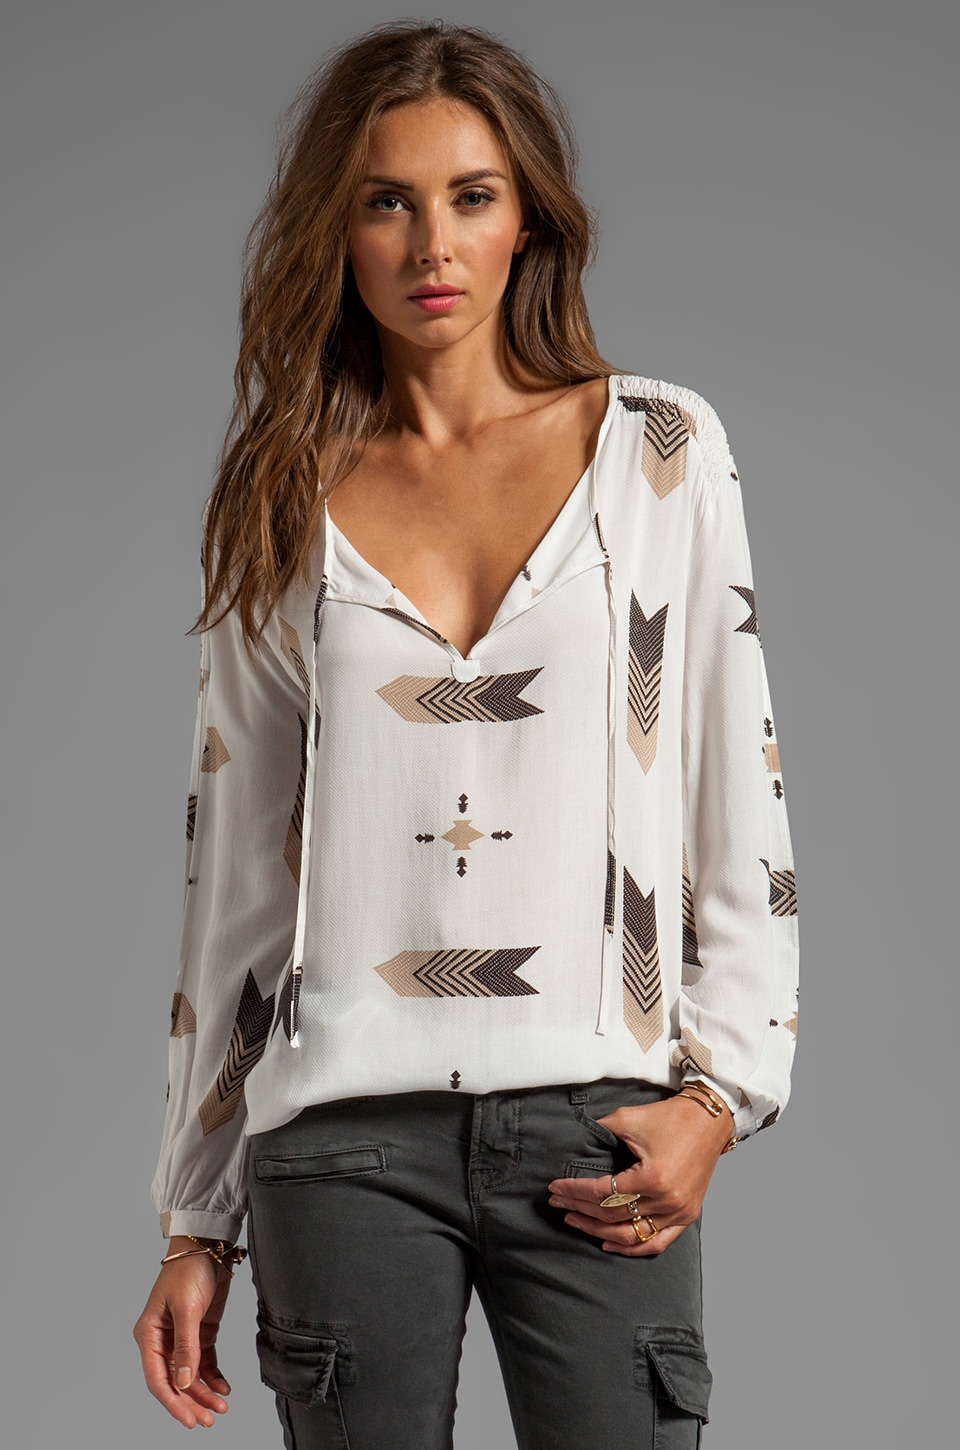 BB Dakota Jami Fletcher Printed Top in Dirty White